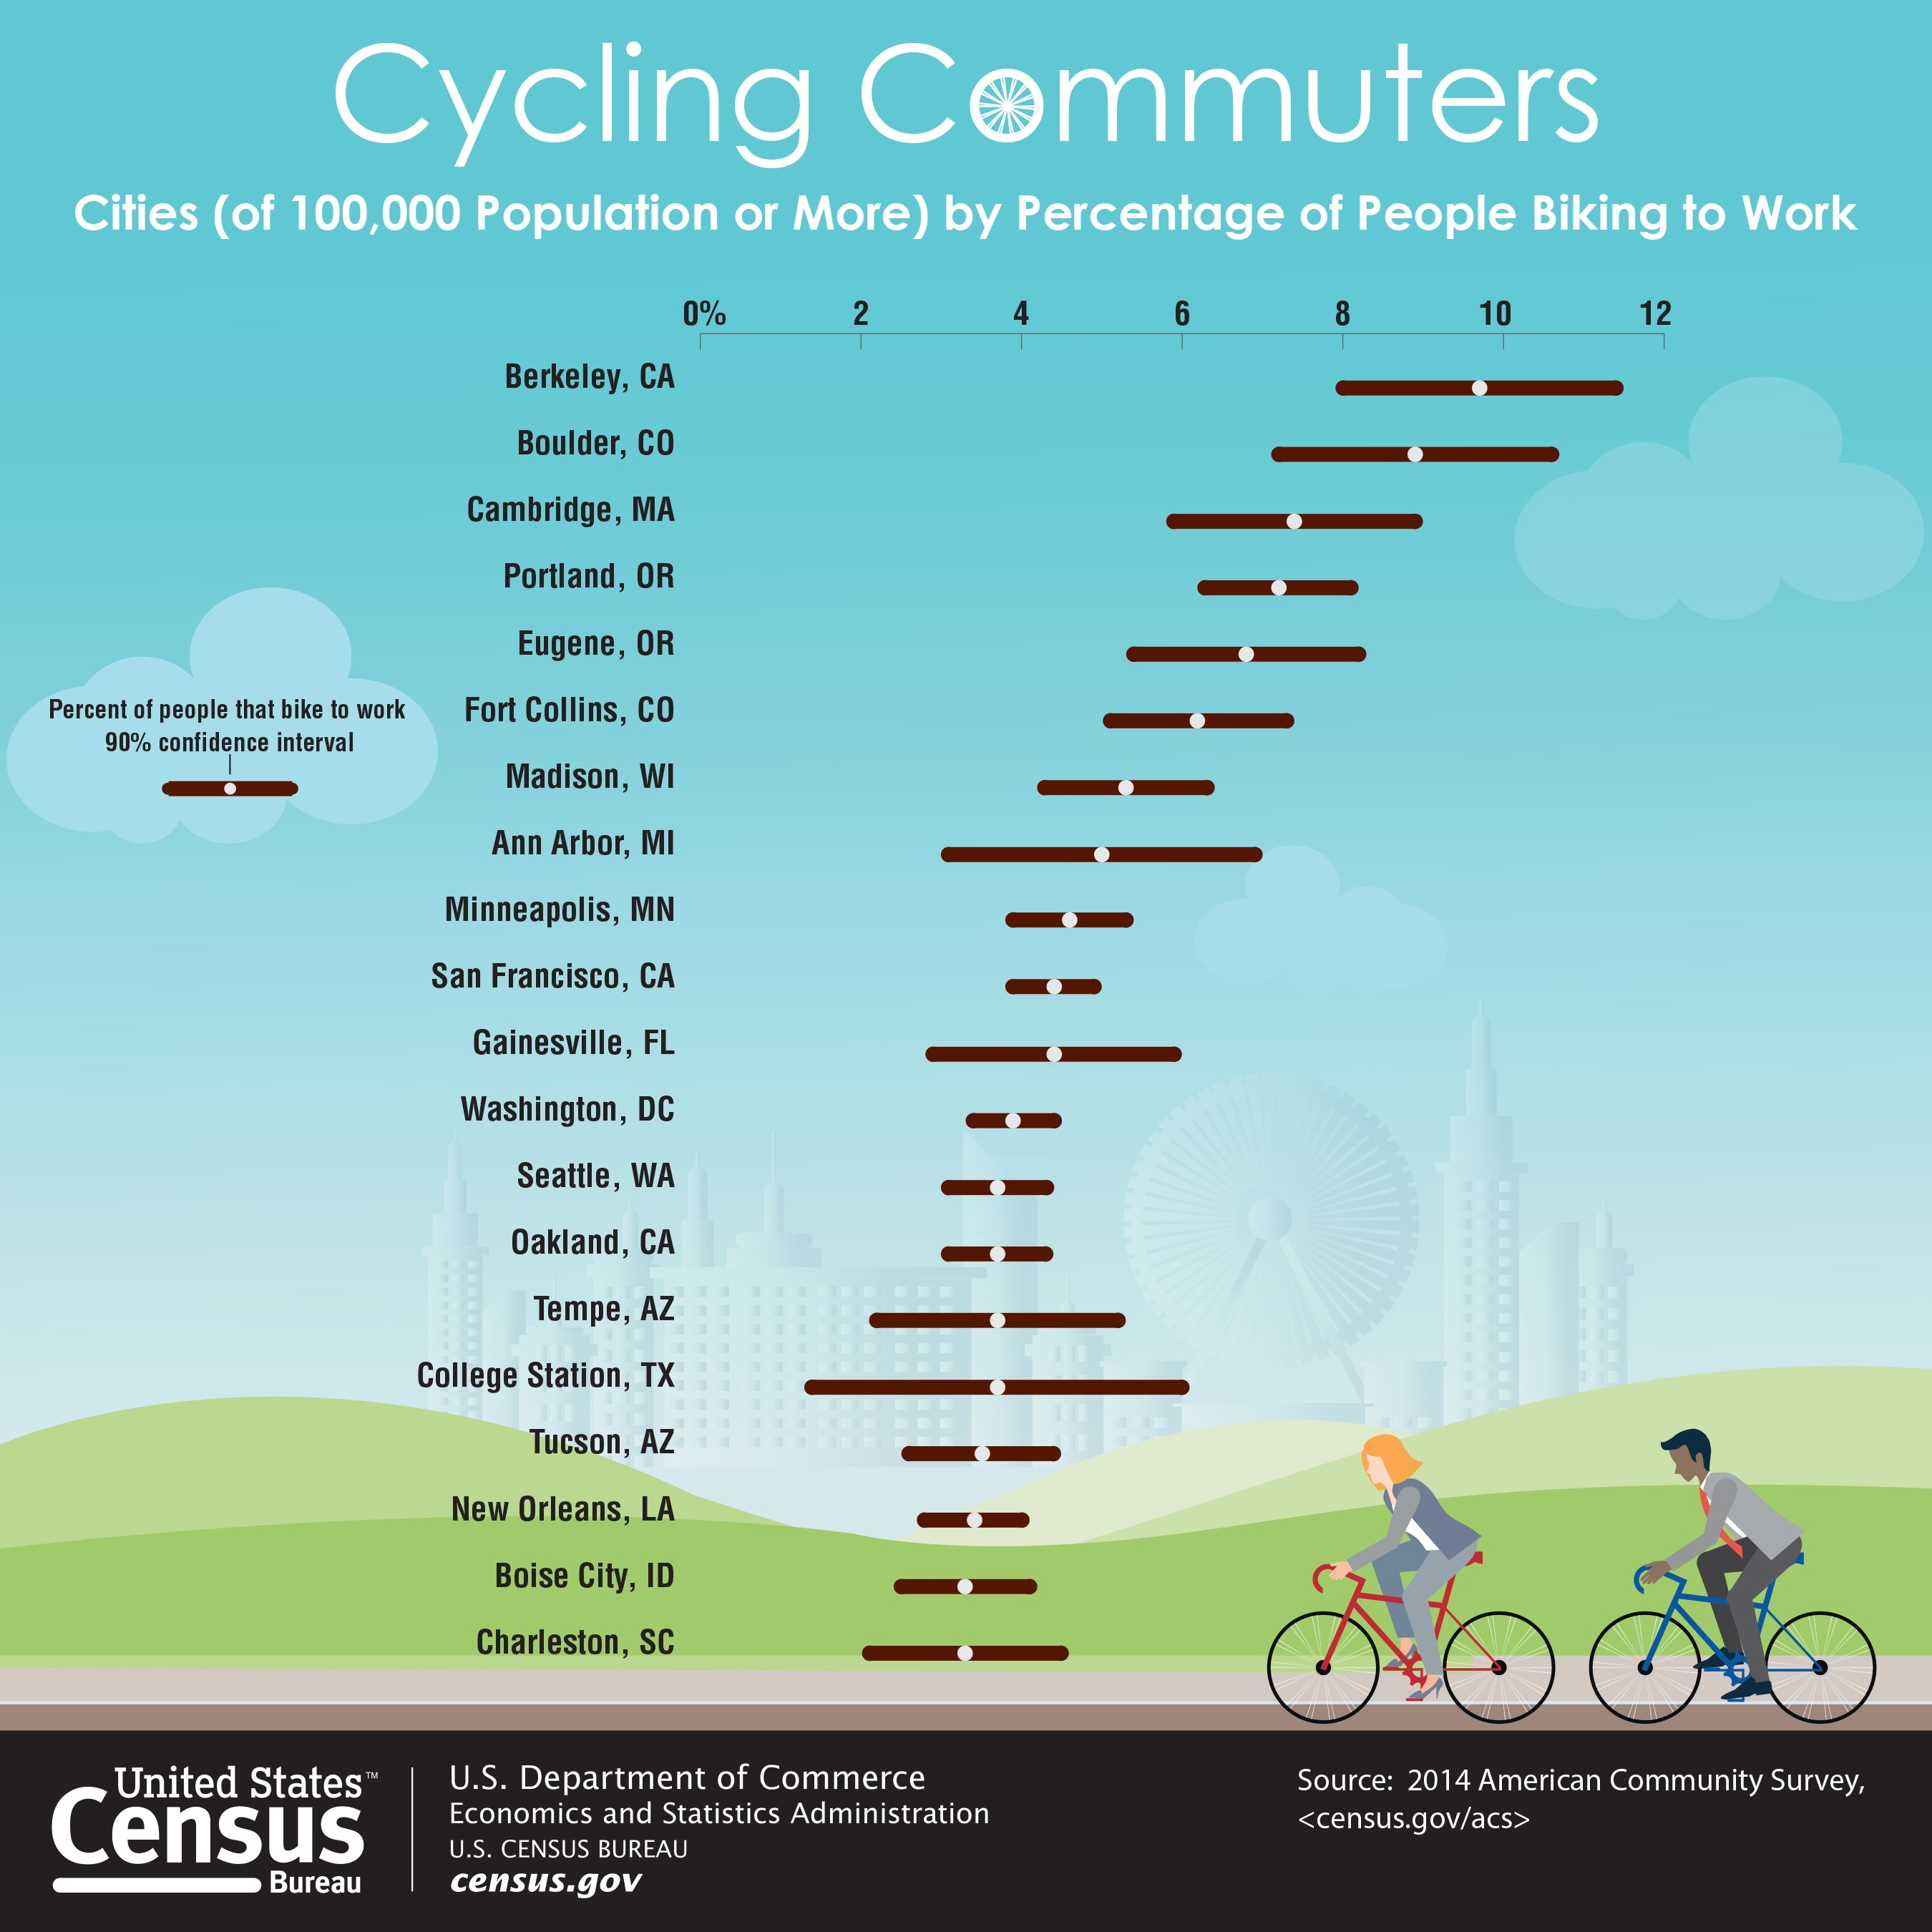 Chart showing the percentage of residents commuting to work by bike for US cities with population greater than 100,000 people.